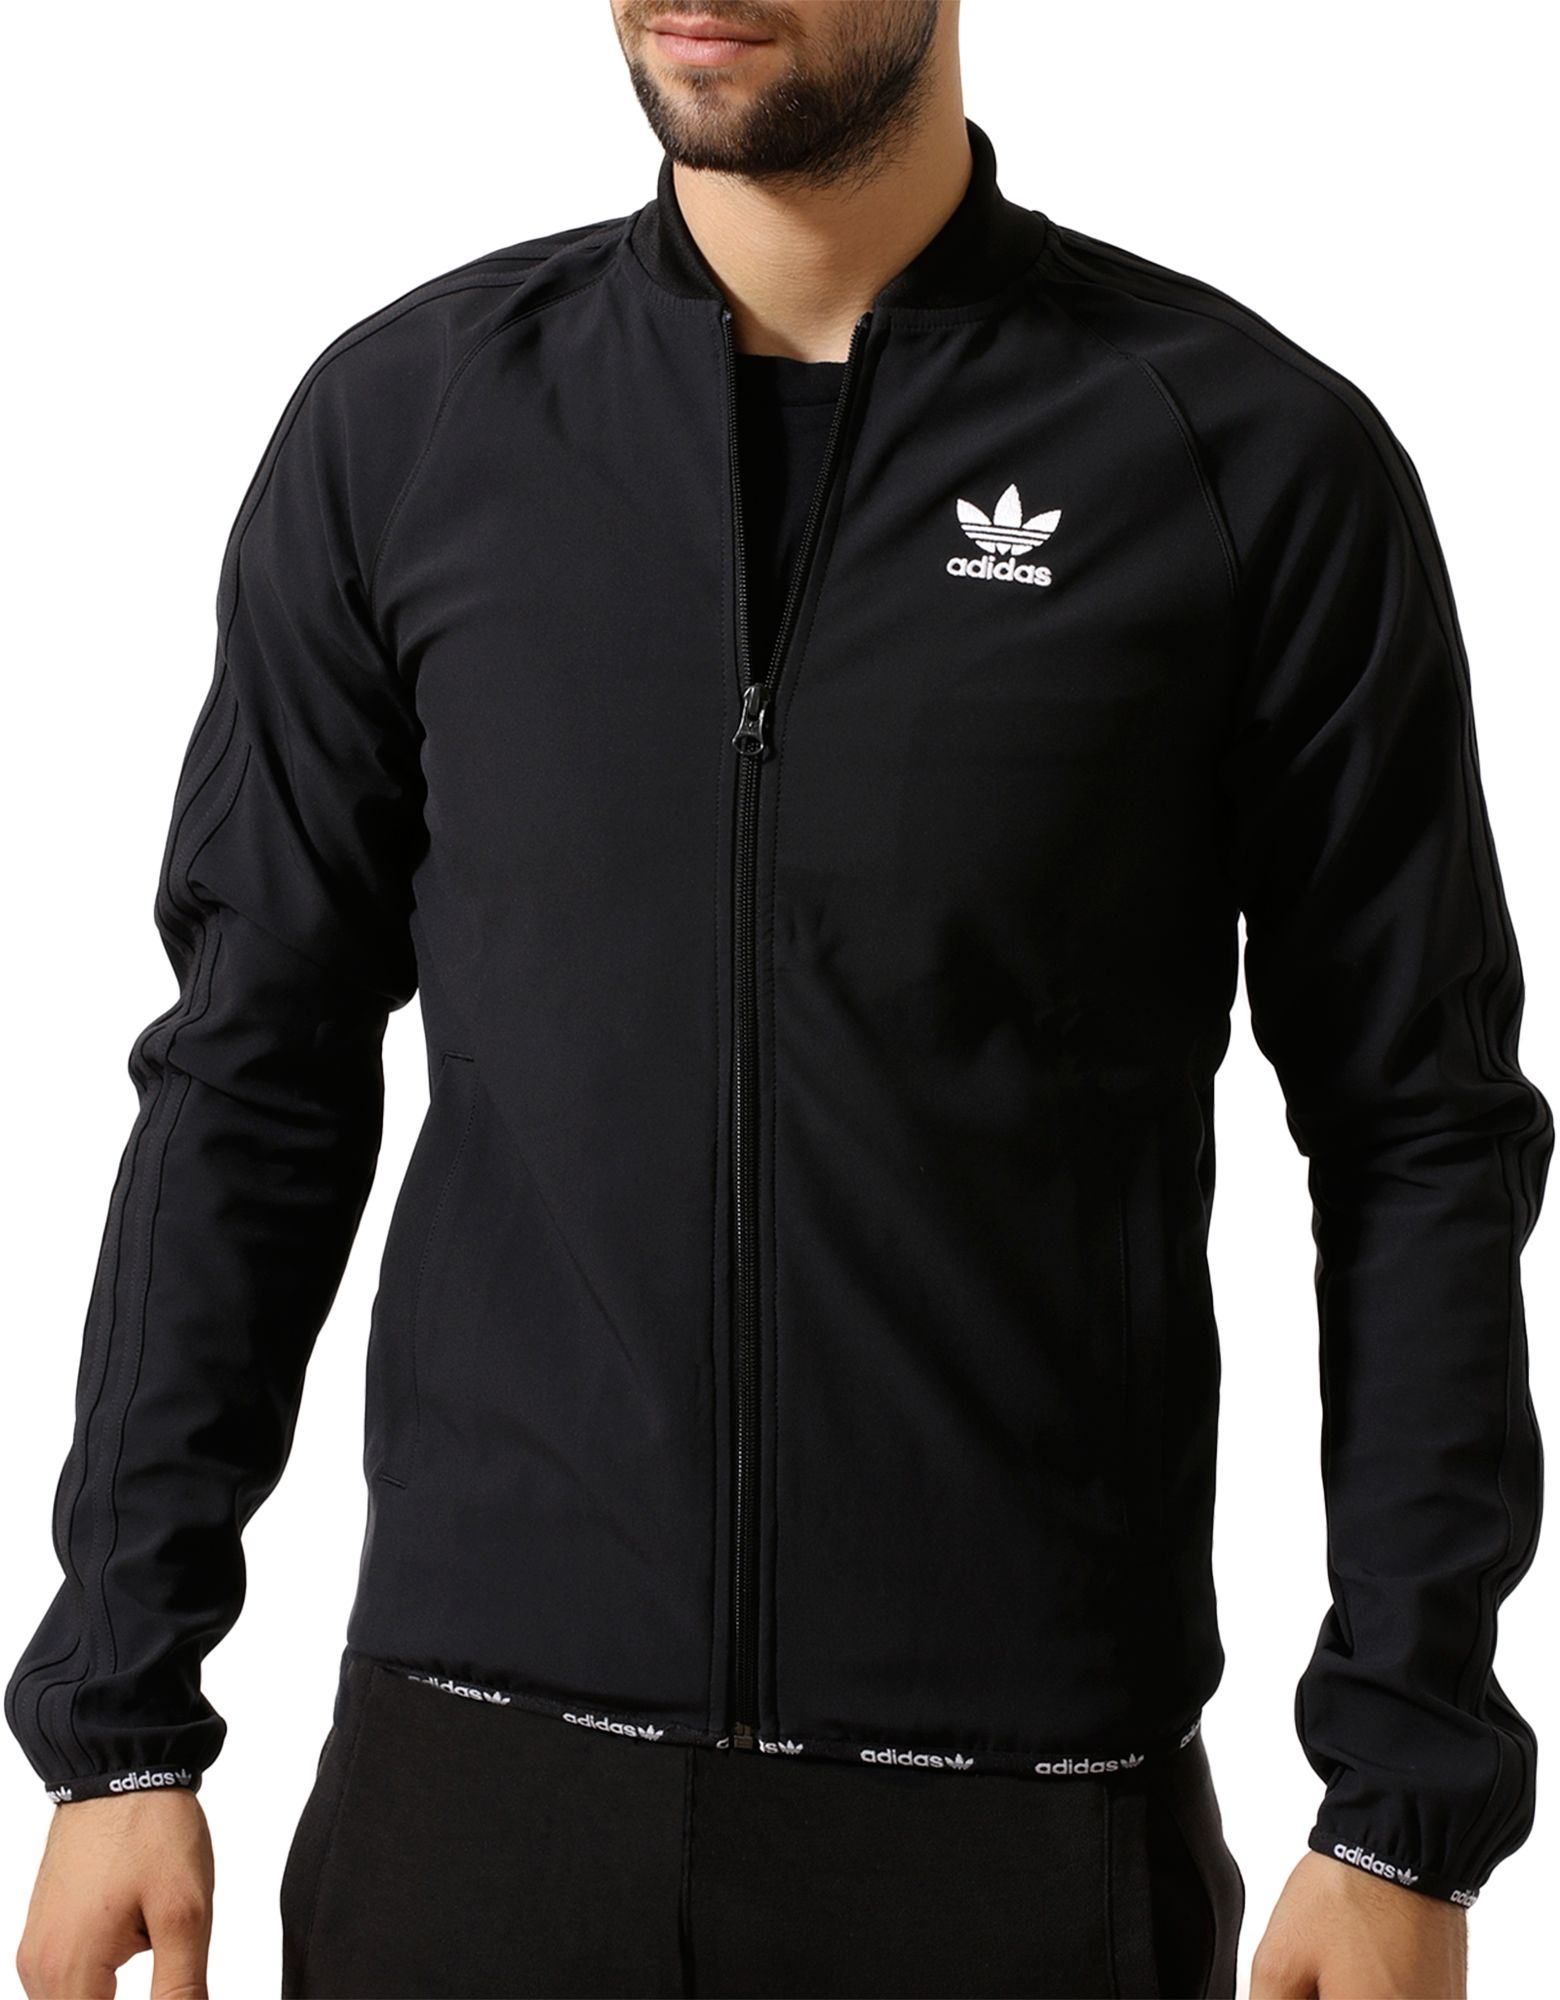 adidas track jacket men Ametis Projects